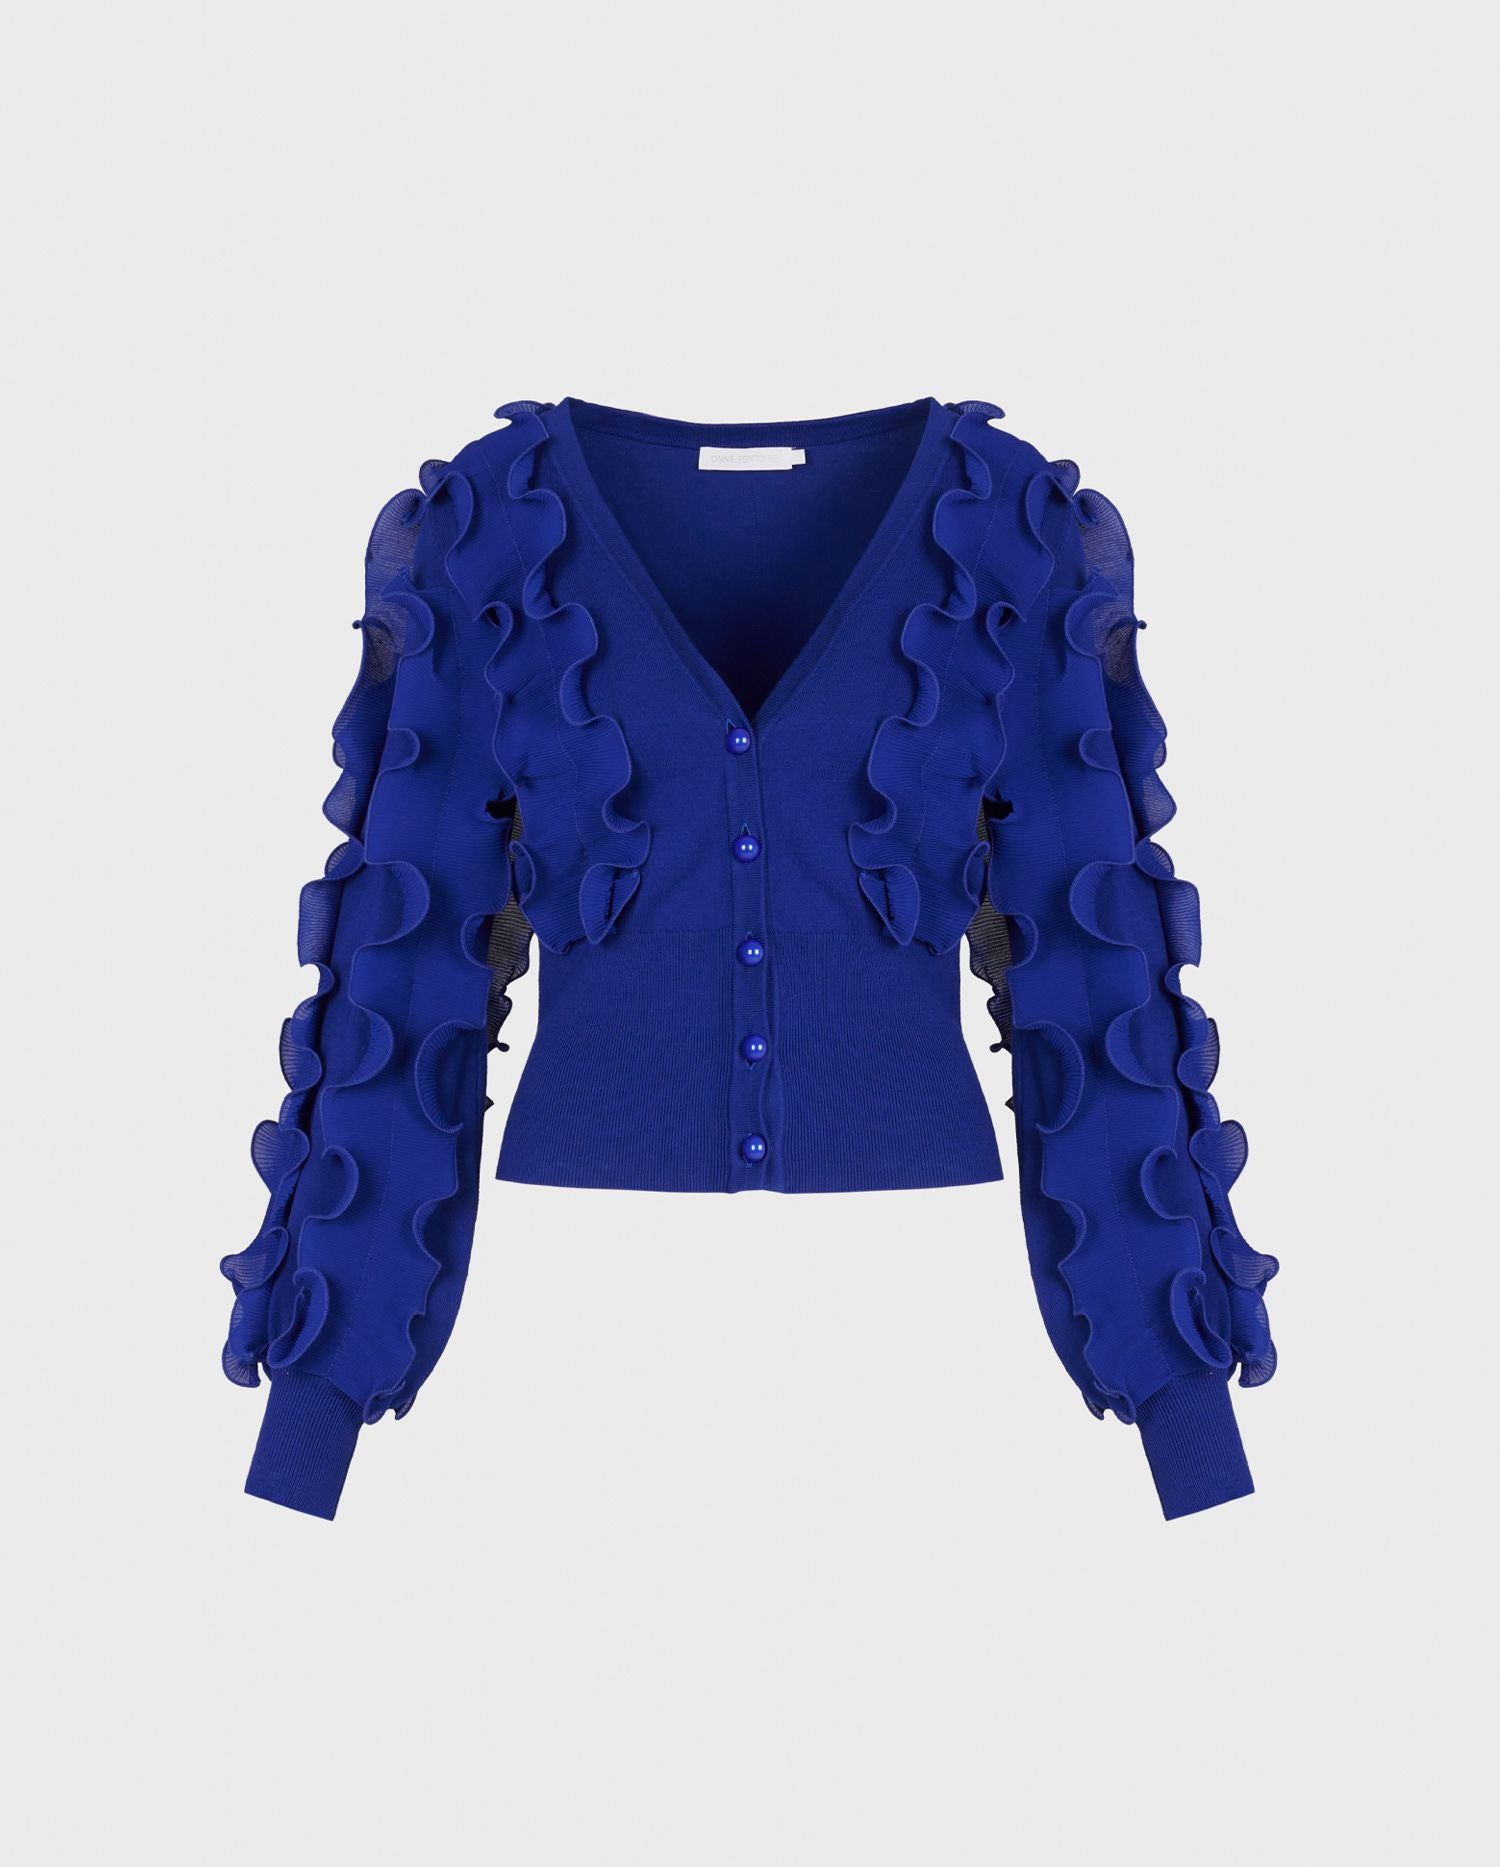 Add the Ciline Ultra Blue sweate to your wardrobe for a vibrant pop of color